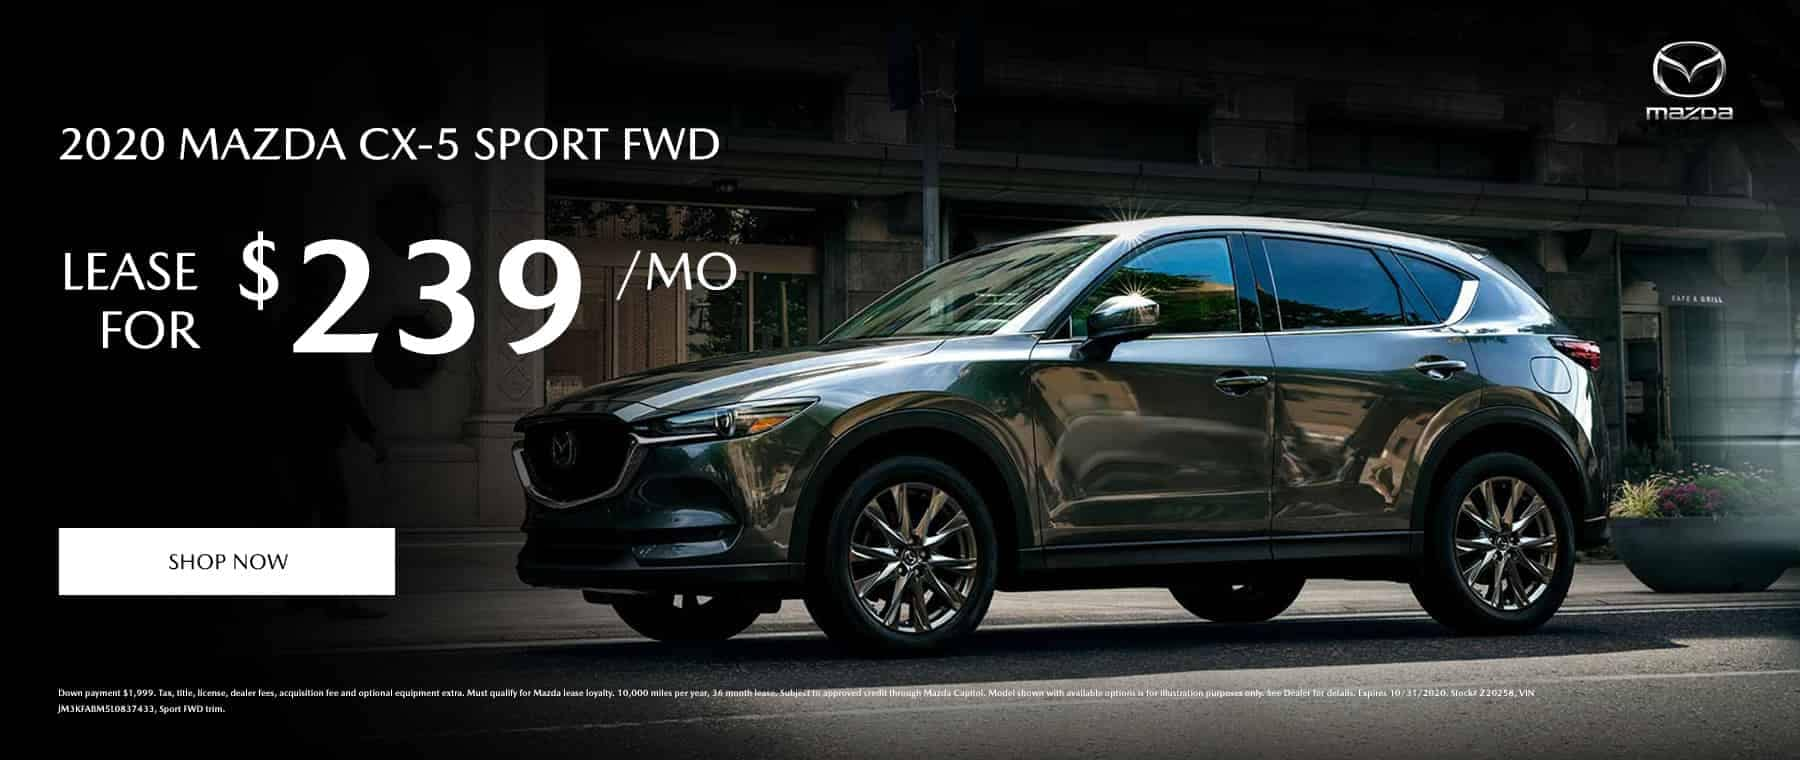 Lease a 2020 Mazda CX-5 Sport FWD for $239 per month